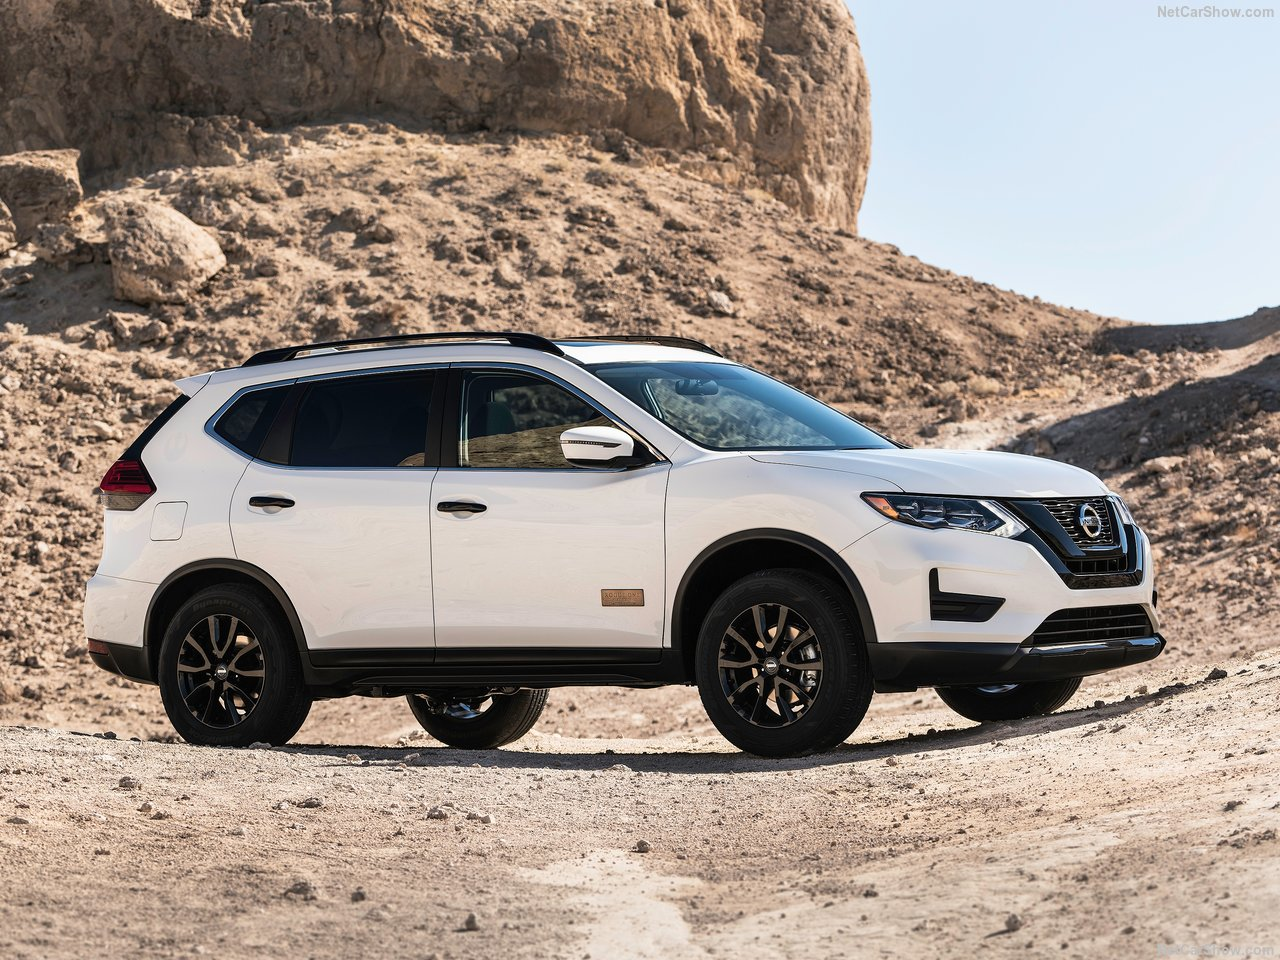 nissan-rogue_one_star_wars_edition-2017-1280-01